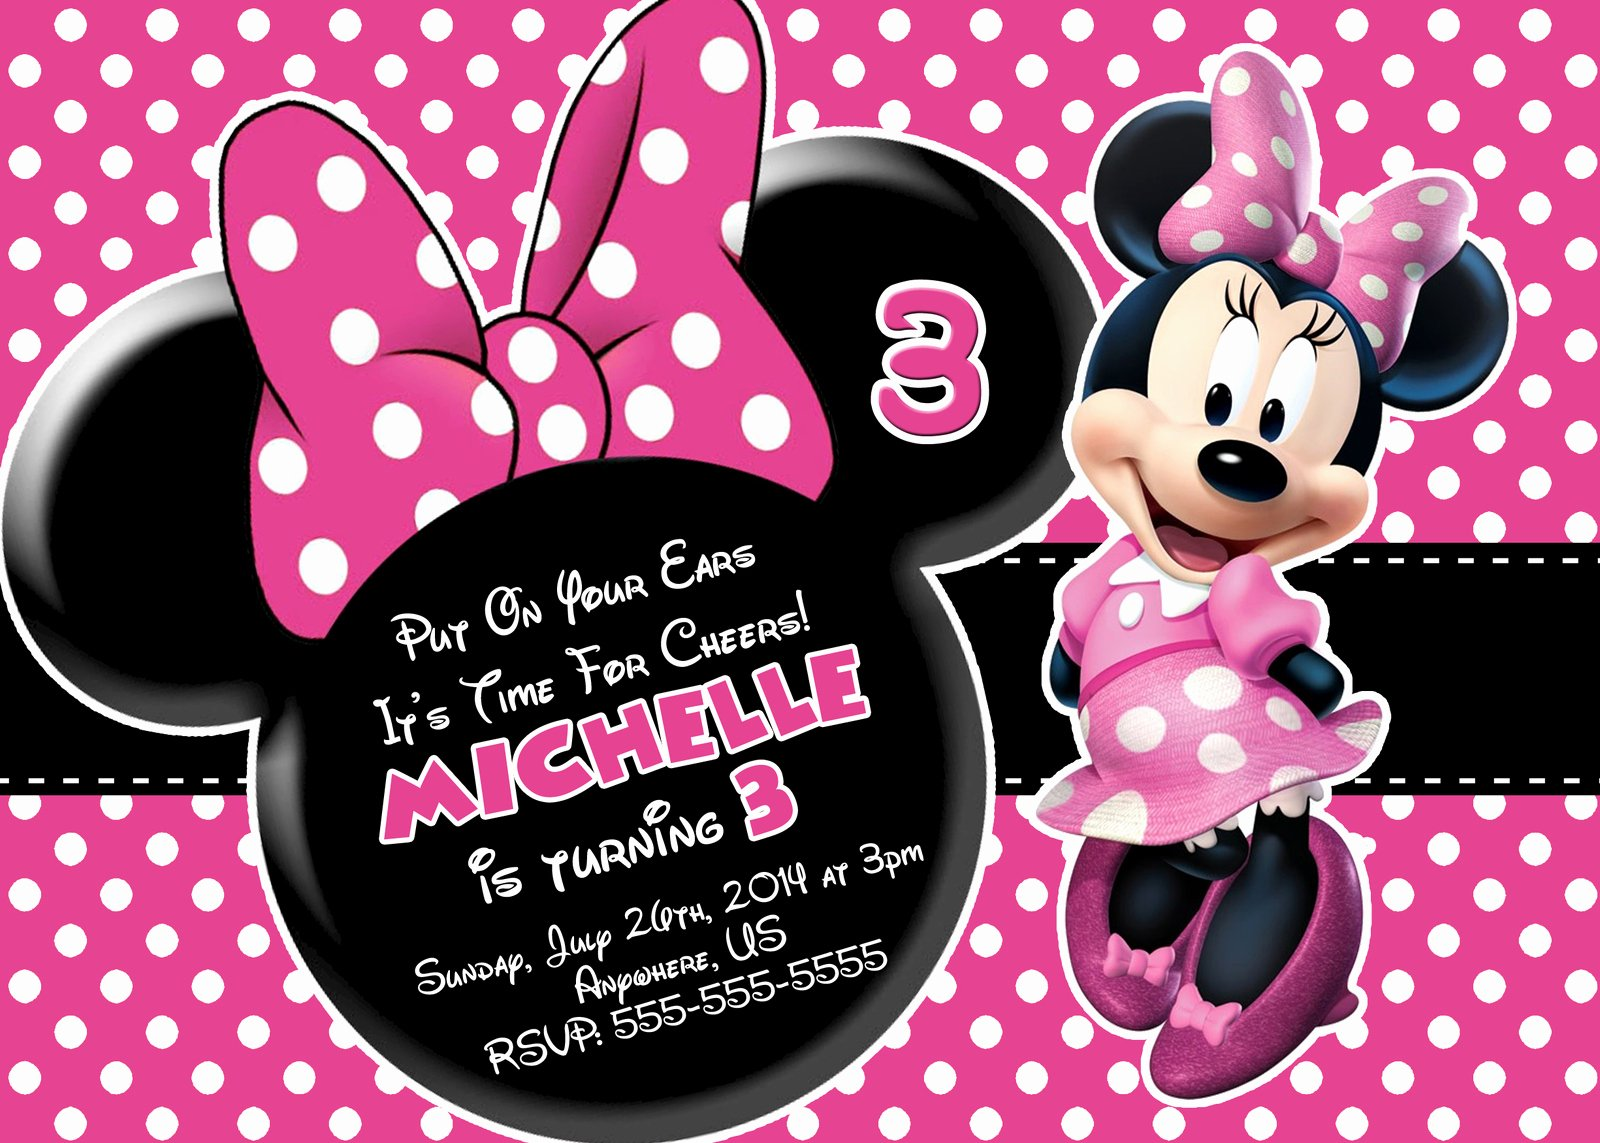 Baby Minnie Mouse Invitation Luxury Free Minnie Mouse Printable Birthday Invitations